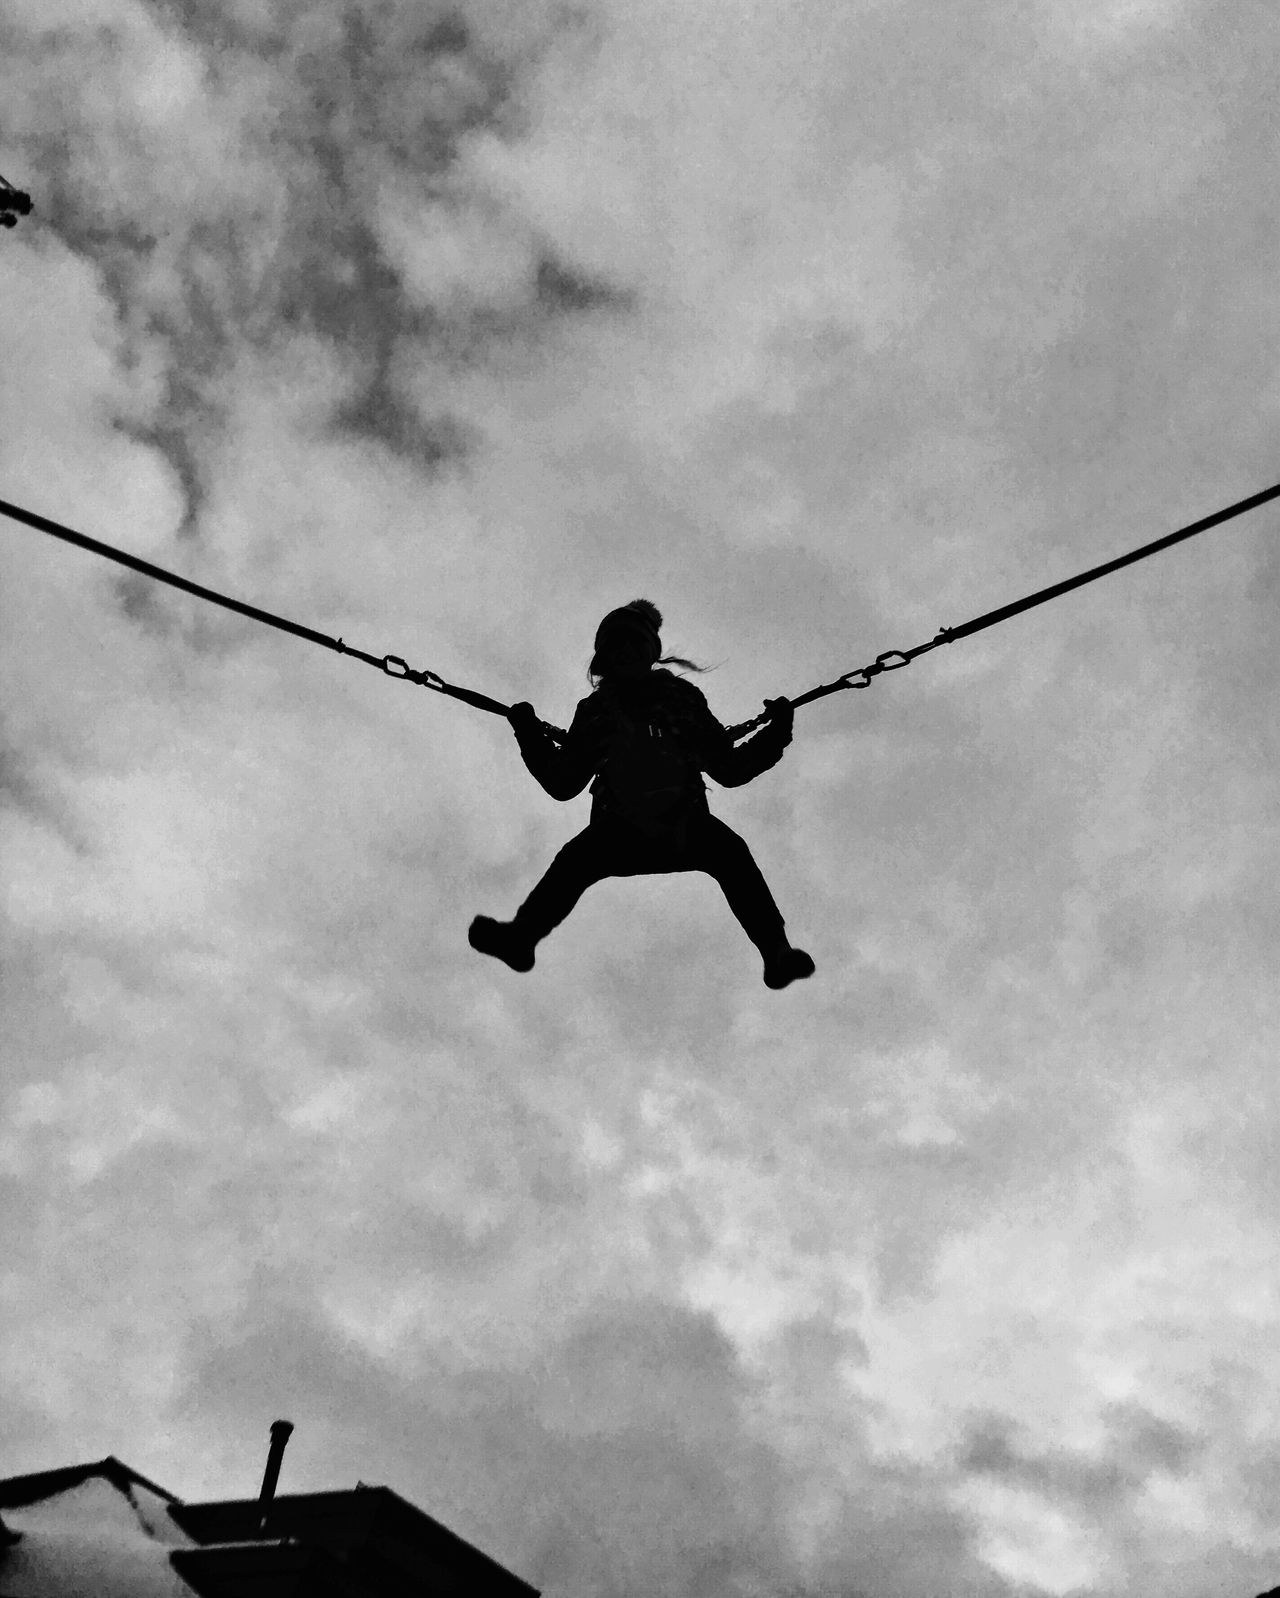 Sky Low Angle View Real People Mid-air One Person Outdoors Cloud - Sky Day Swing Jumping Black & White Leisure Activity Low Angle View